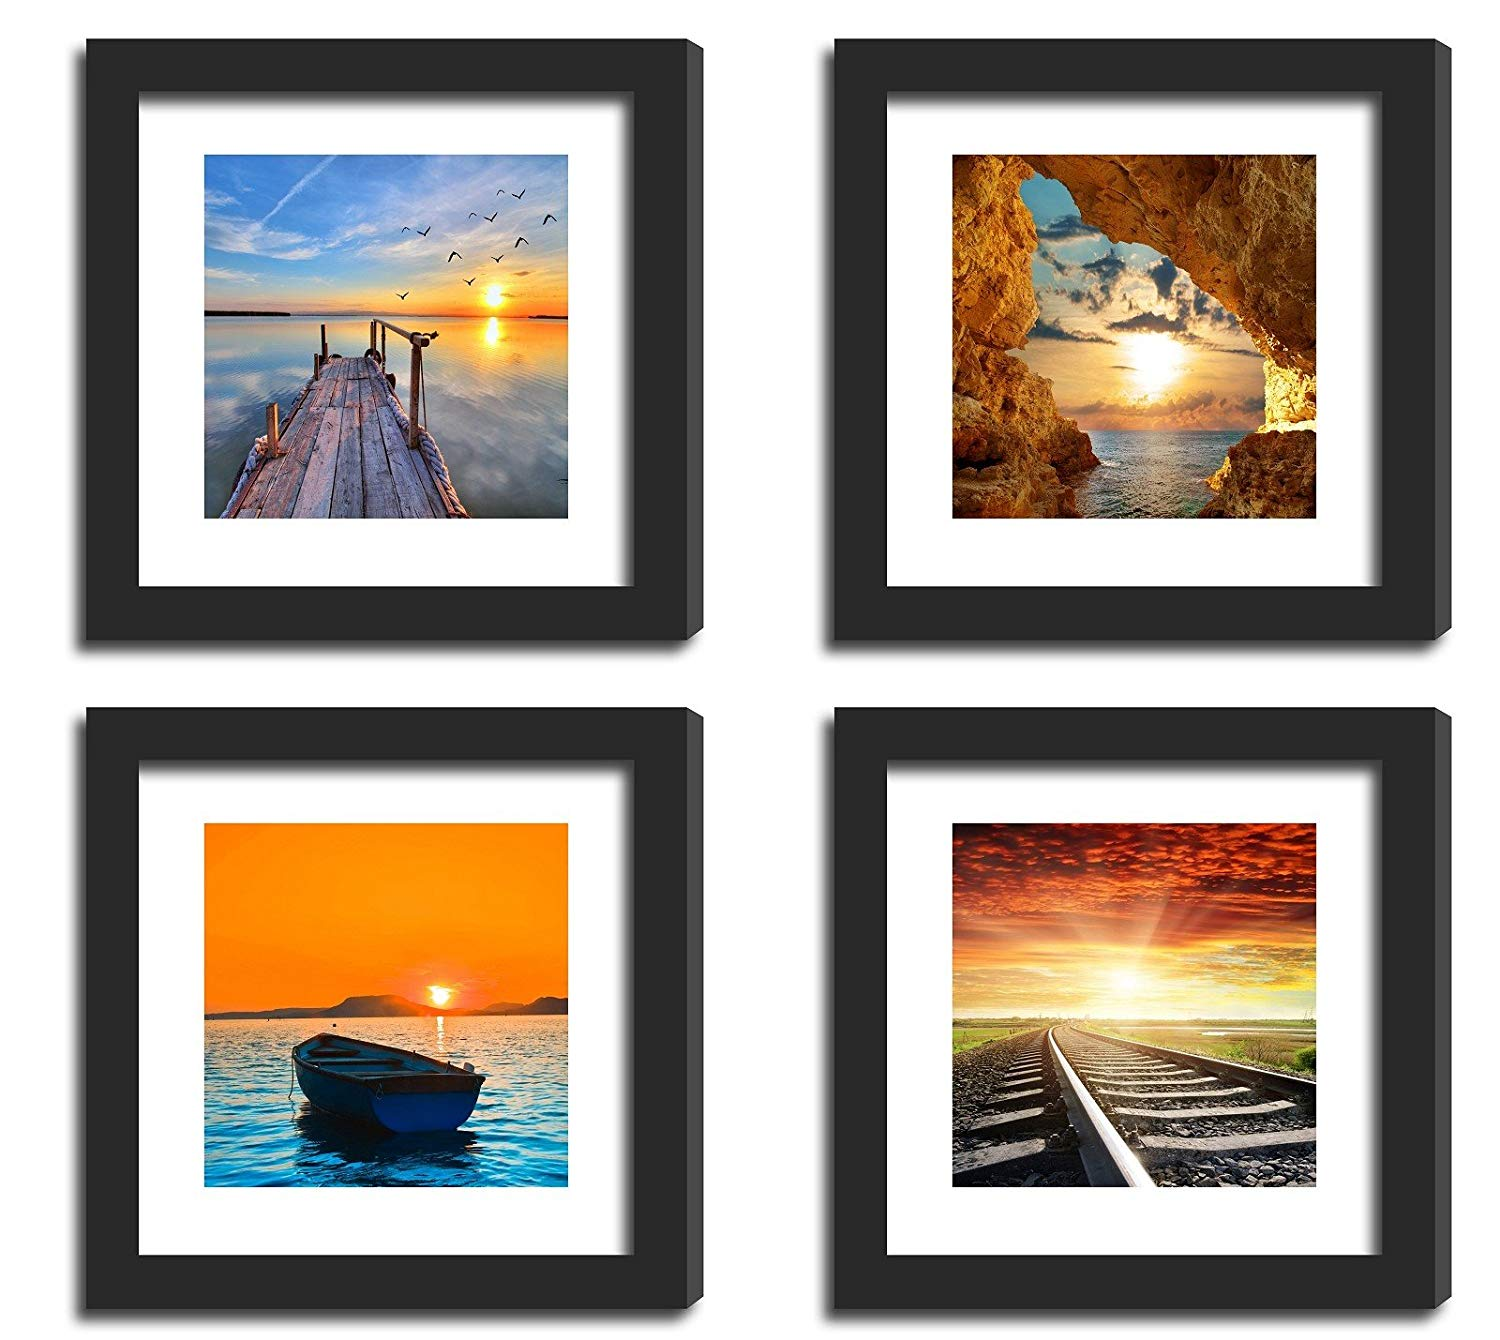 "4Pcs x Real Glass Wood Frame Black Fit 11x11"" , 2 Matted Fit Photo Pictures Photo 8x8"" 4x4"" Desktop Stand or Wall Hang Family Pier Sunset Jetty Combine Square Decoration (5-8)"